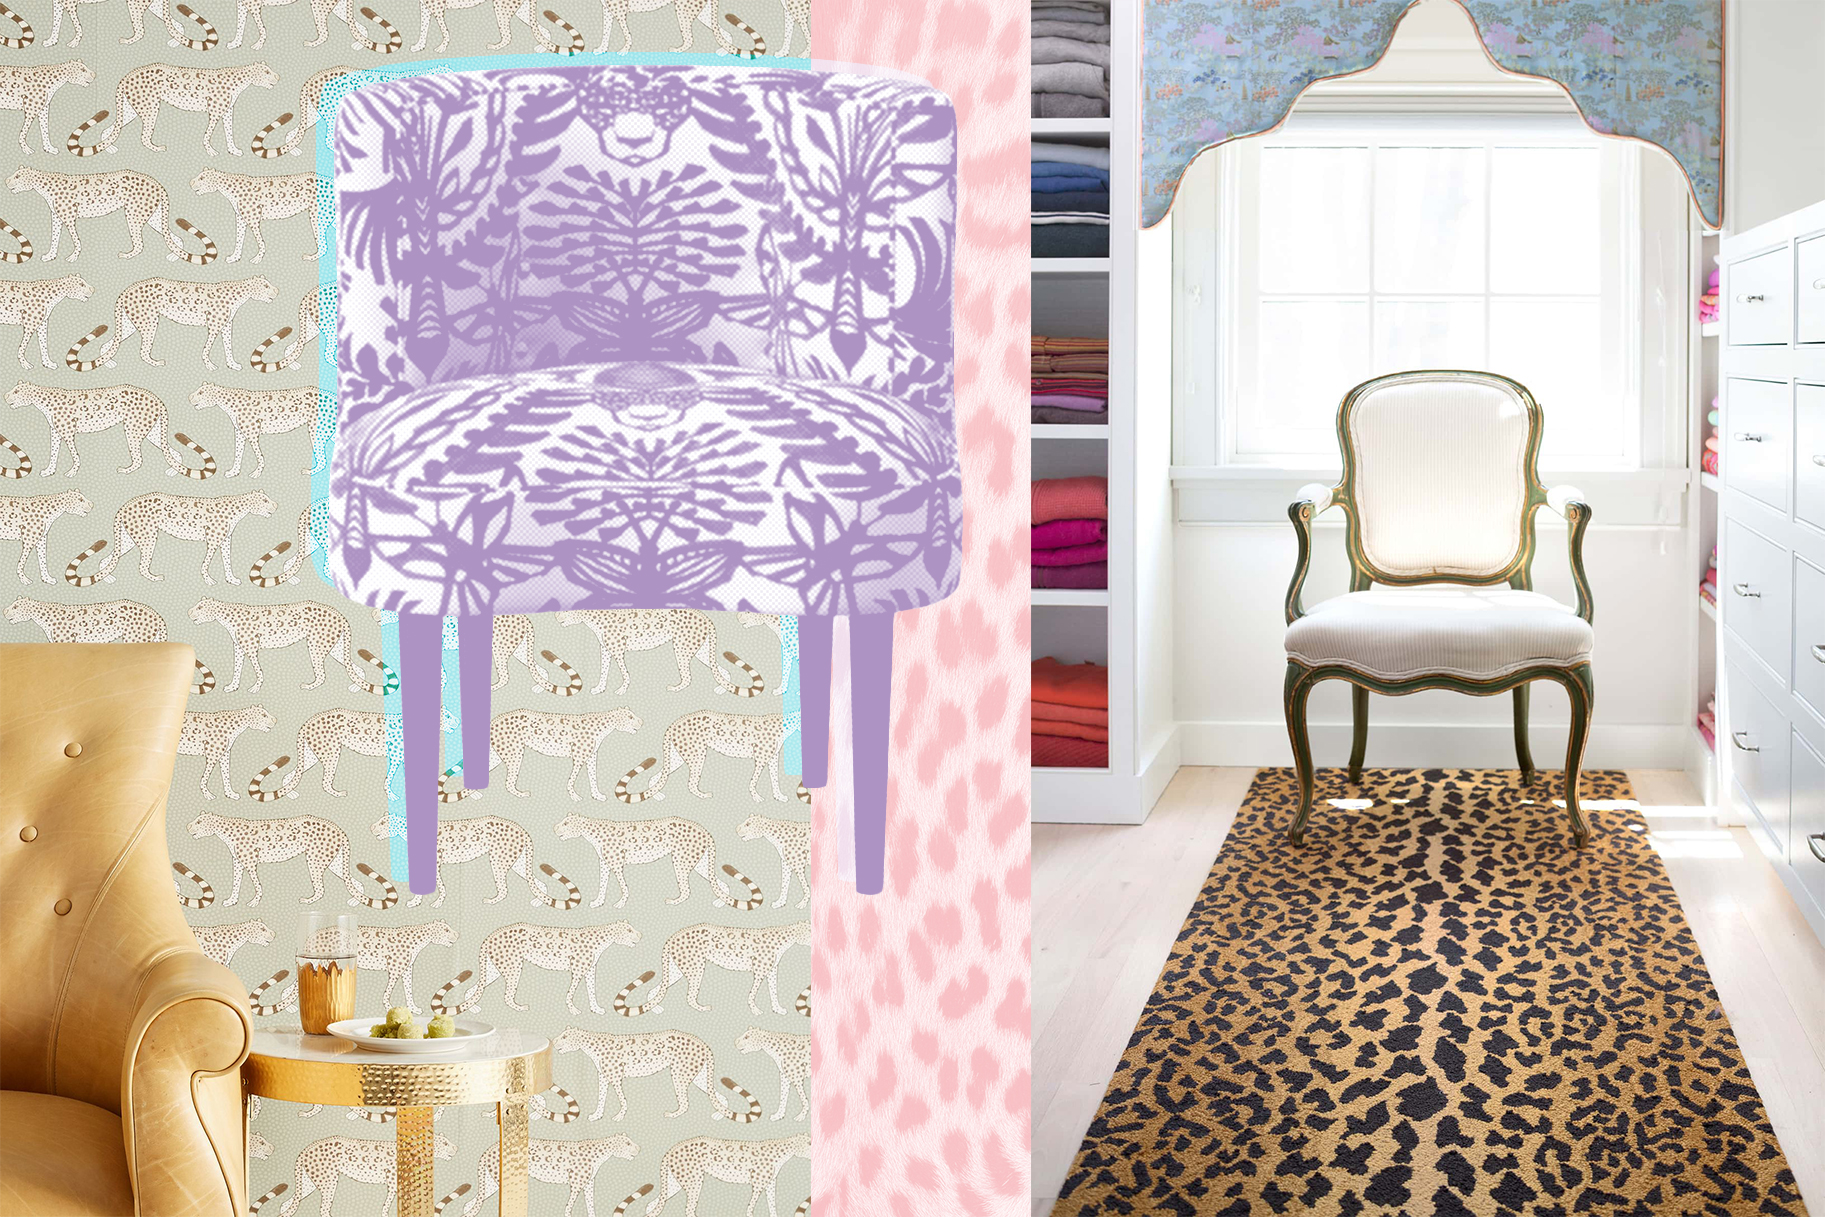 Leopard Home Trend Decor Design Featuring Animal Prints   Style ...